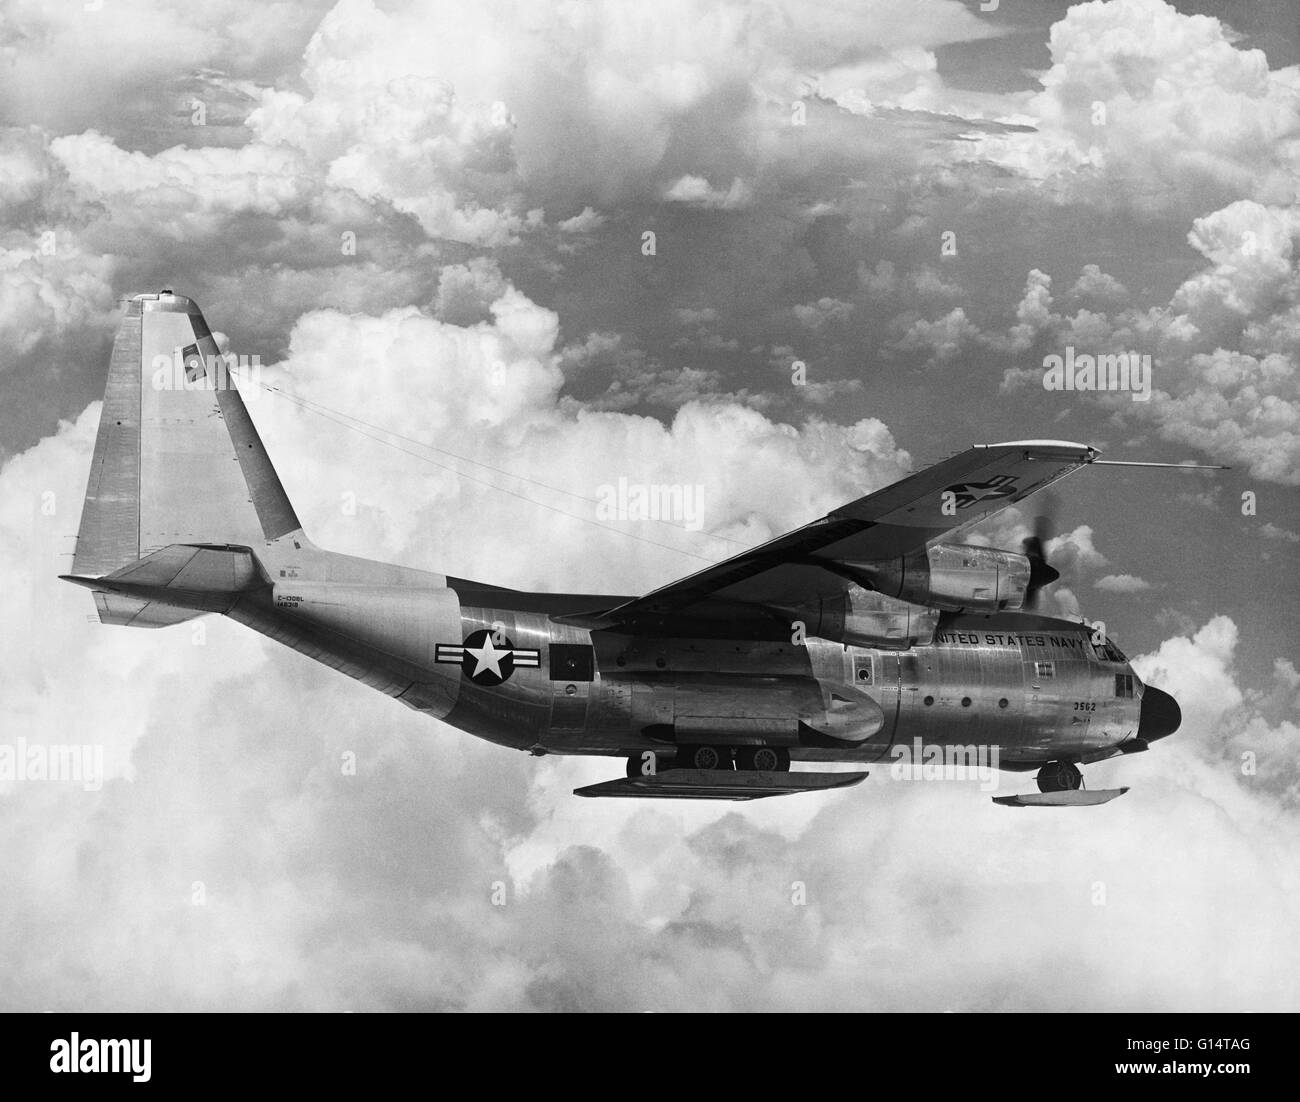 The Lockheed C-130 Hercules is a four-engine turboprop military transport aircraft designed and built originally - Stock Image